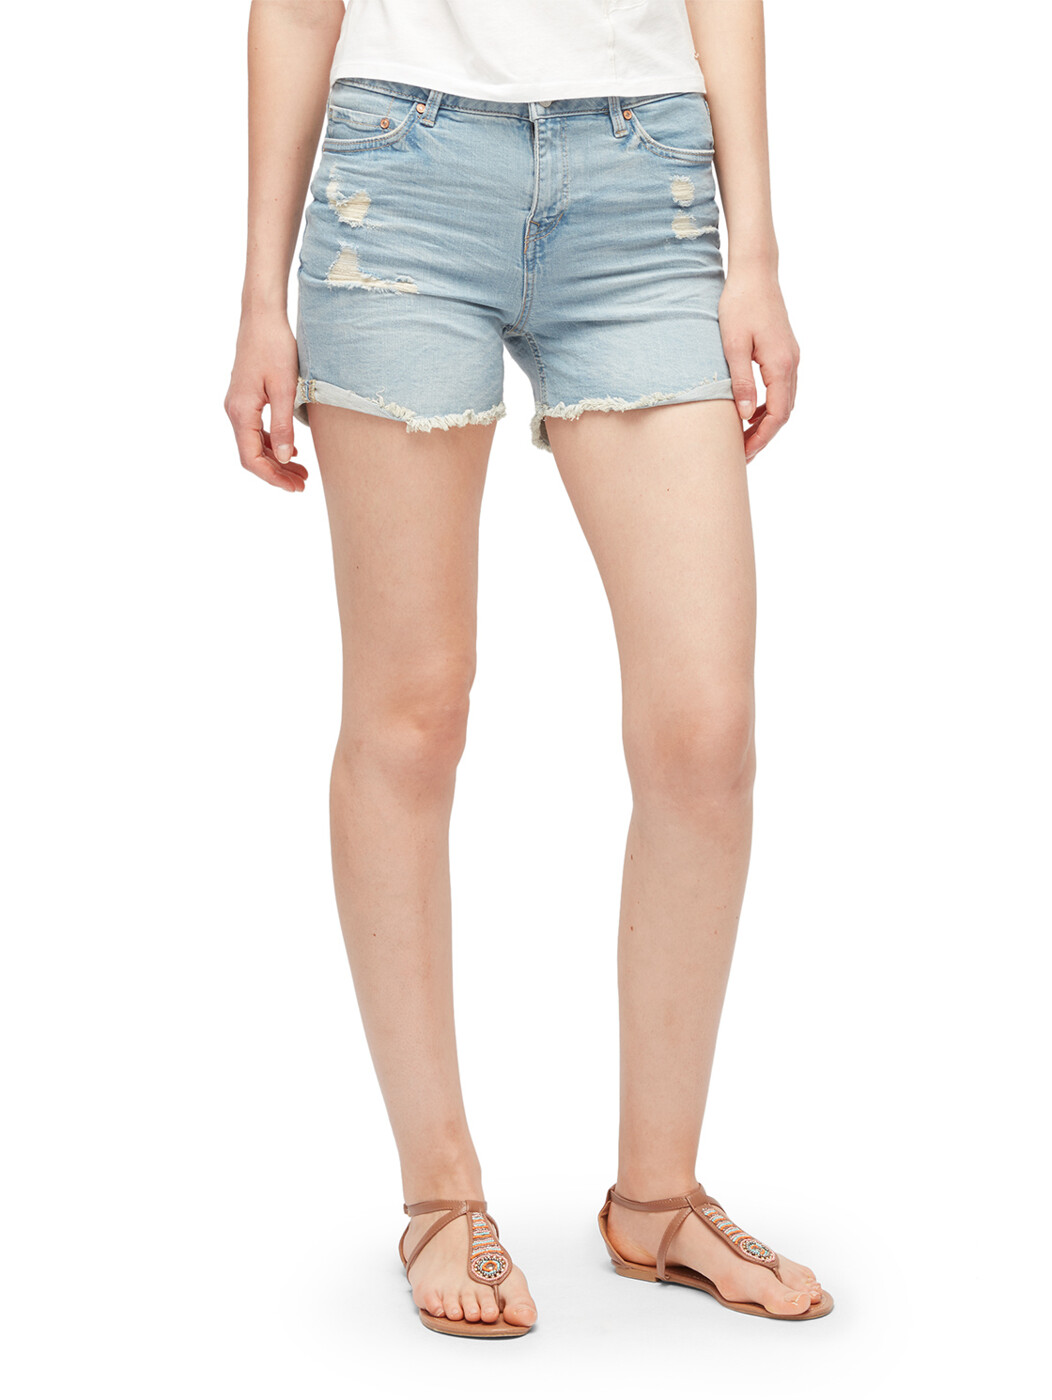 Distressed Cajsa Denim Shorts - Damen